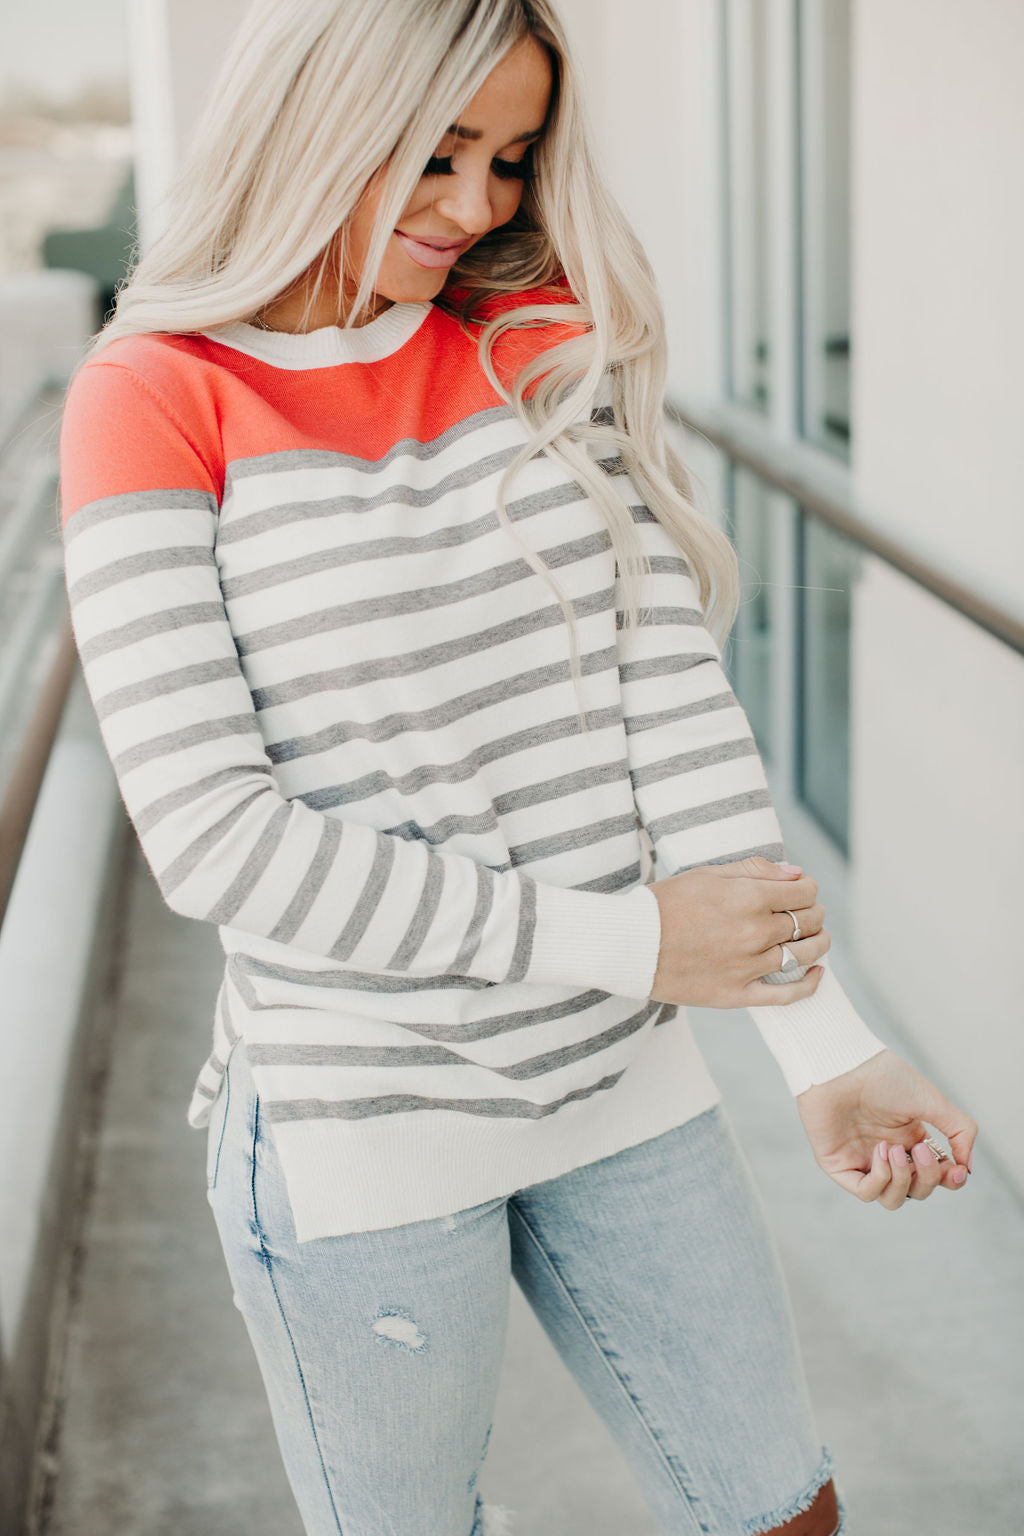 Graham Sweater - Coral Cutie